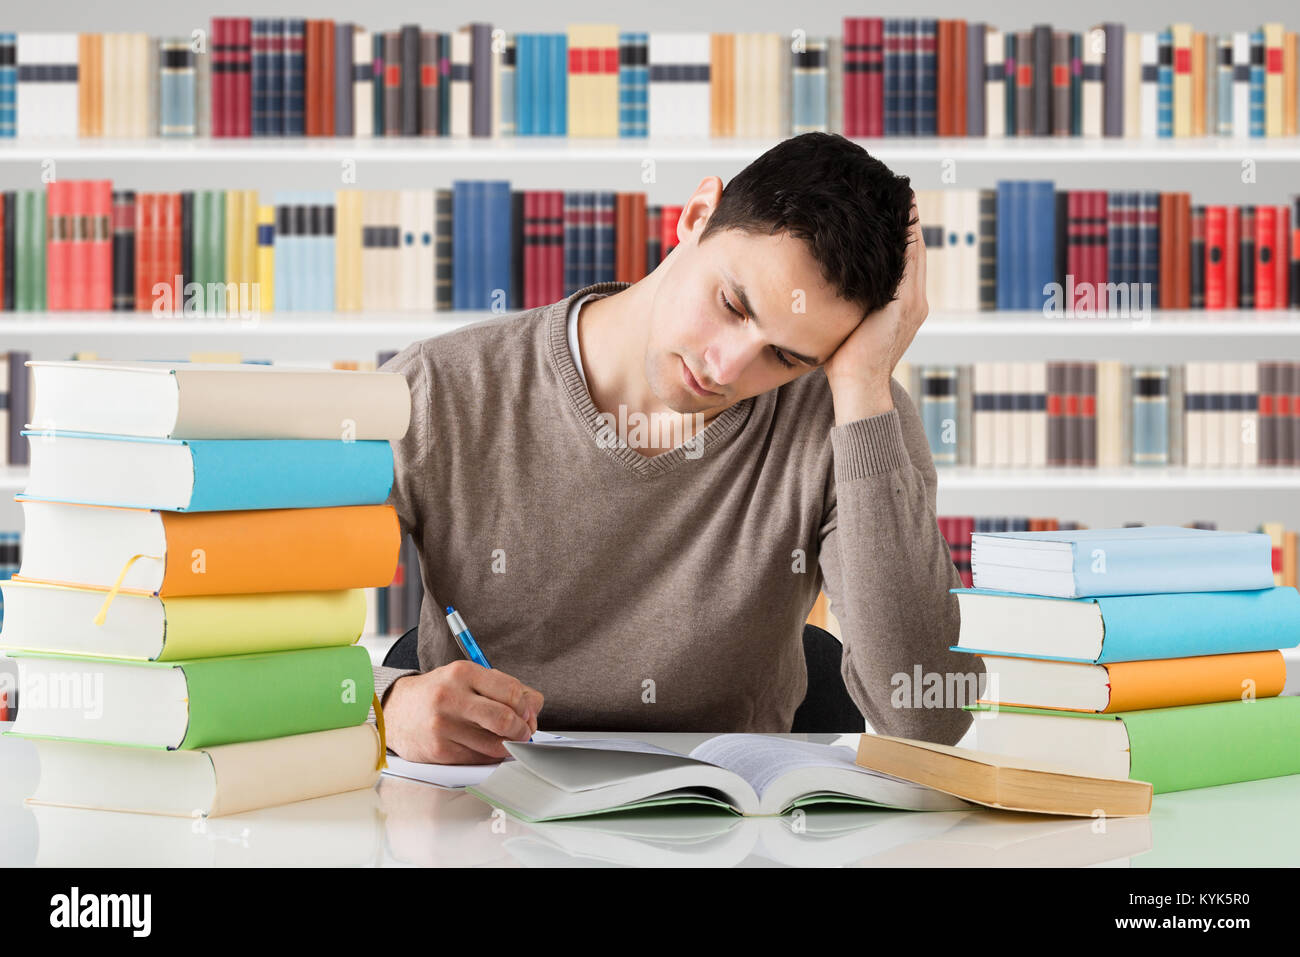 Stressful University Student Studying In Front Of Bookshelf At Library - Stock Image